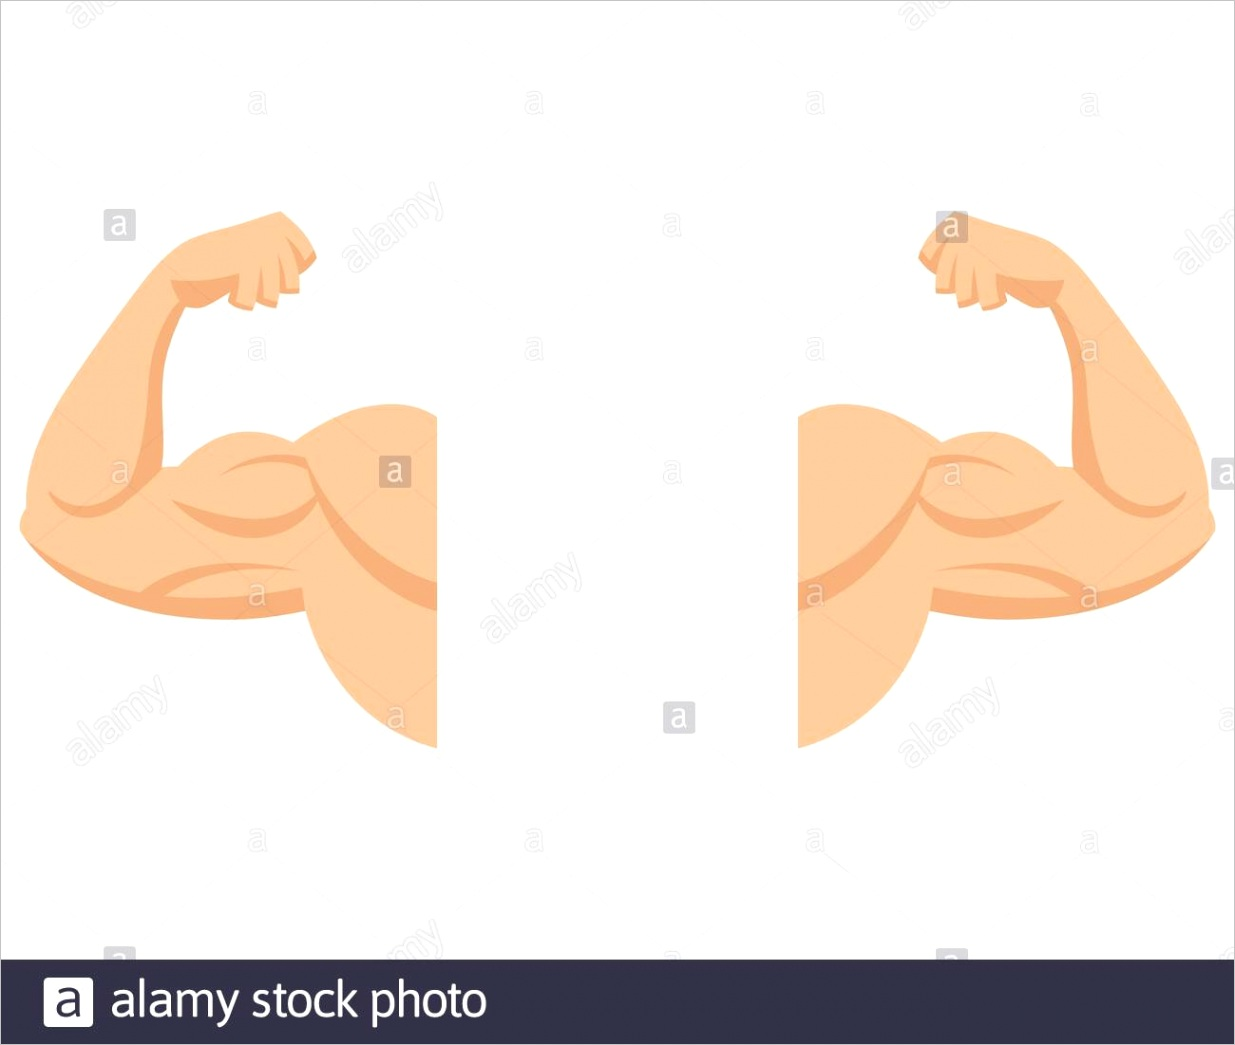 strong arms with contracted biceps muscle in cartoon style image ml